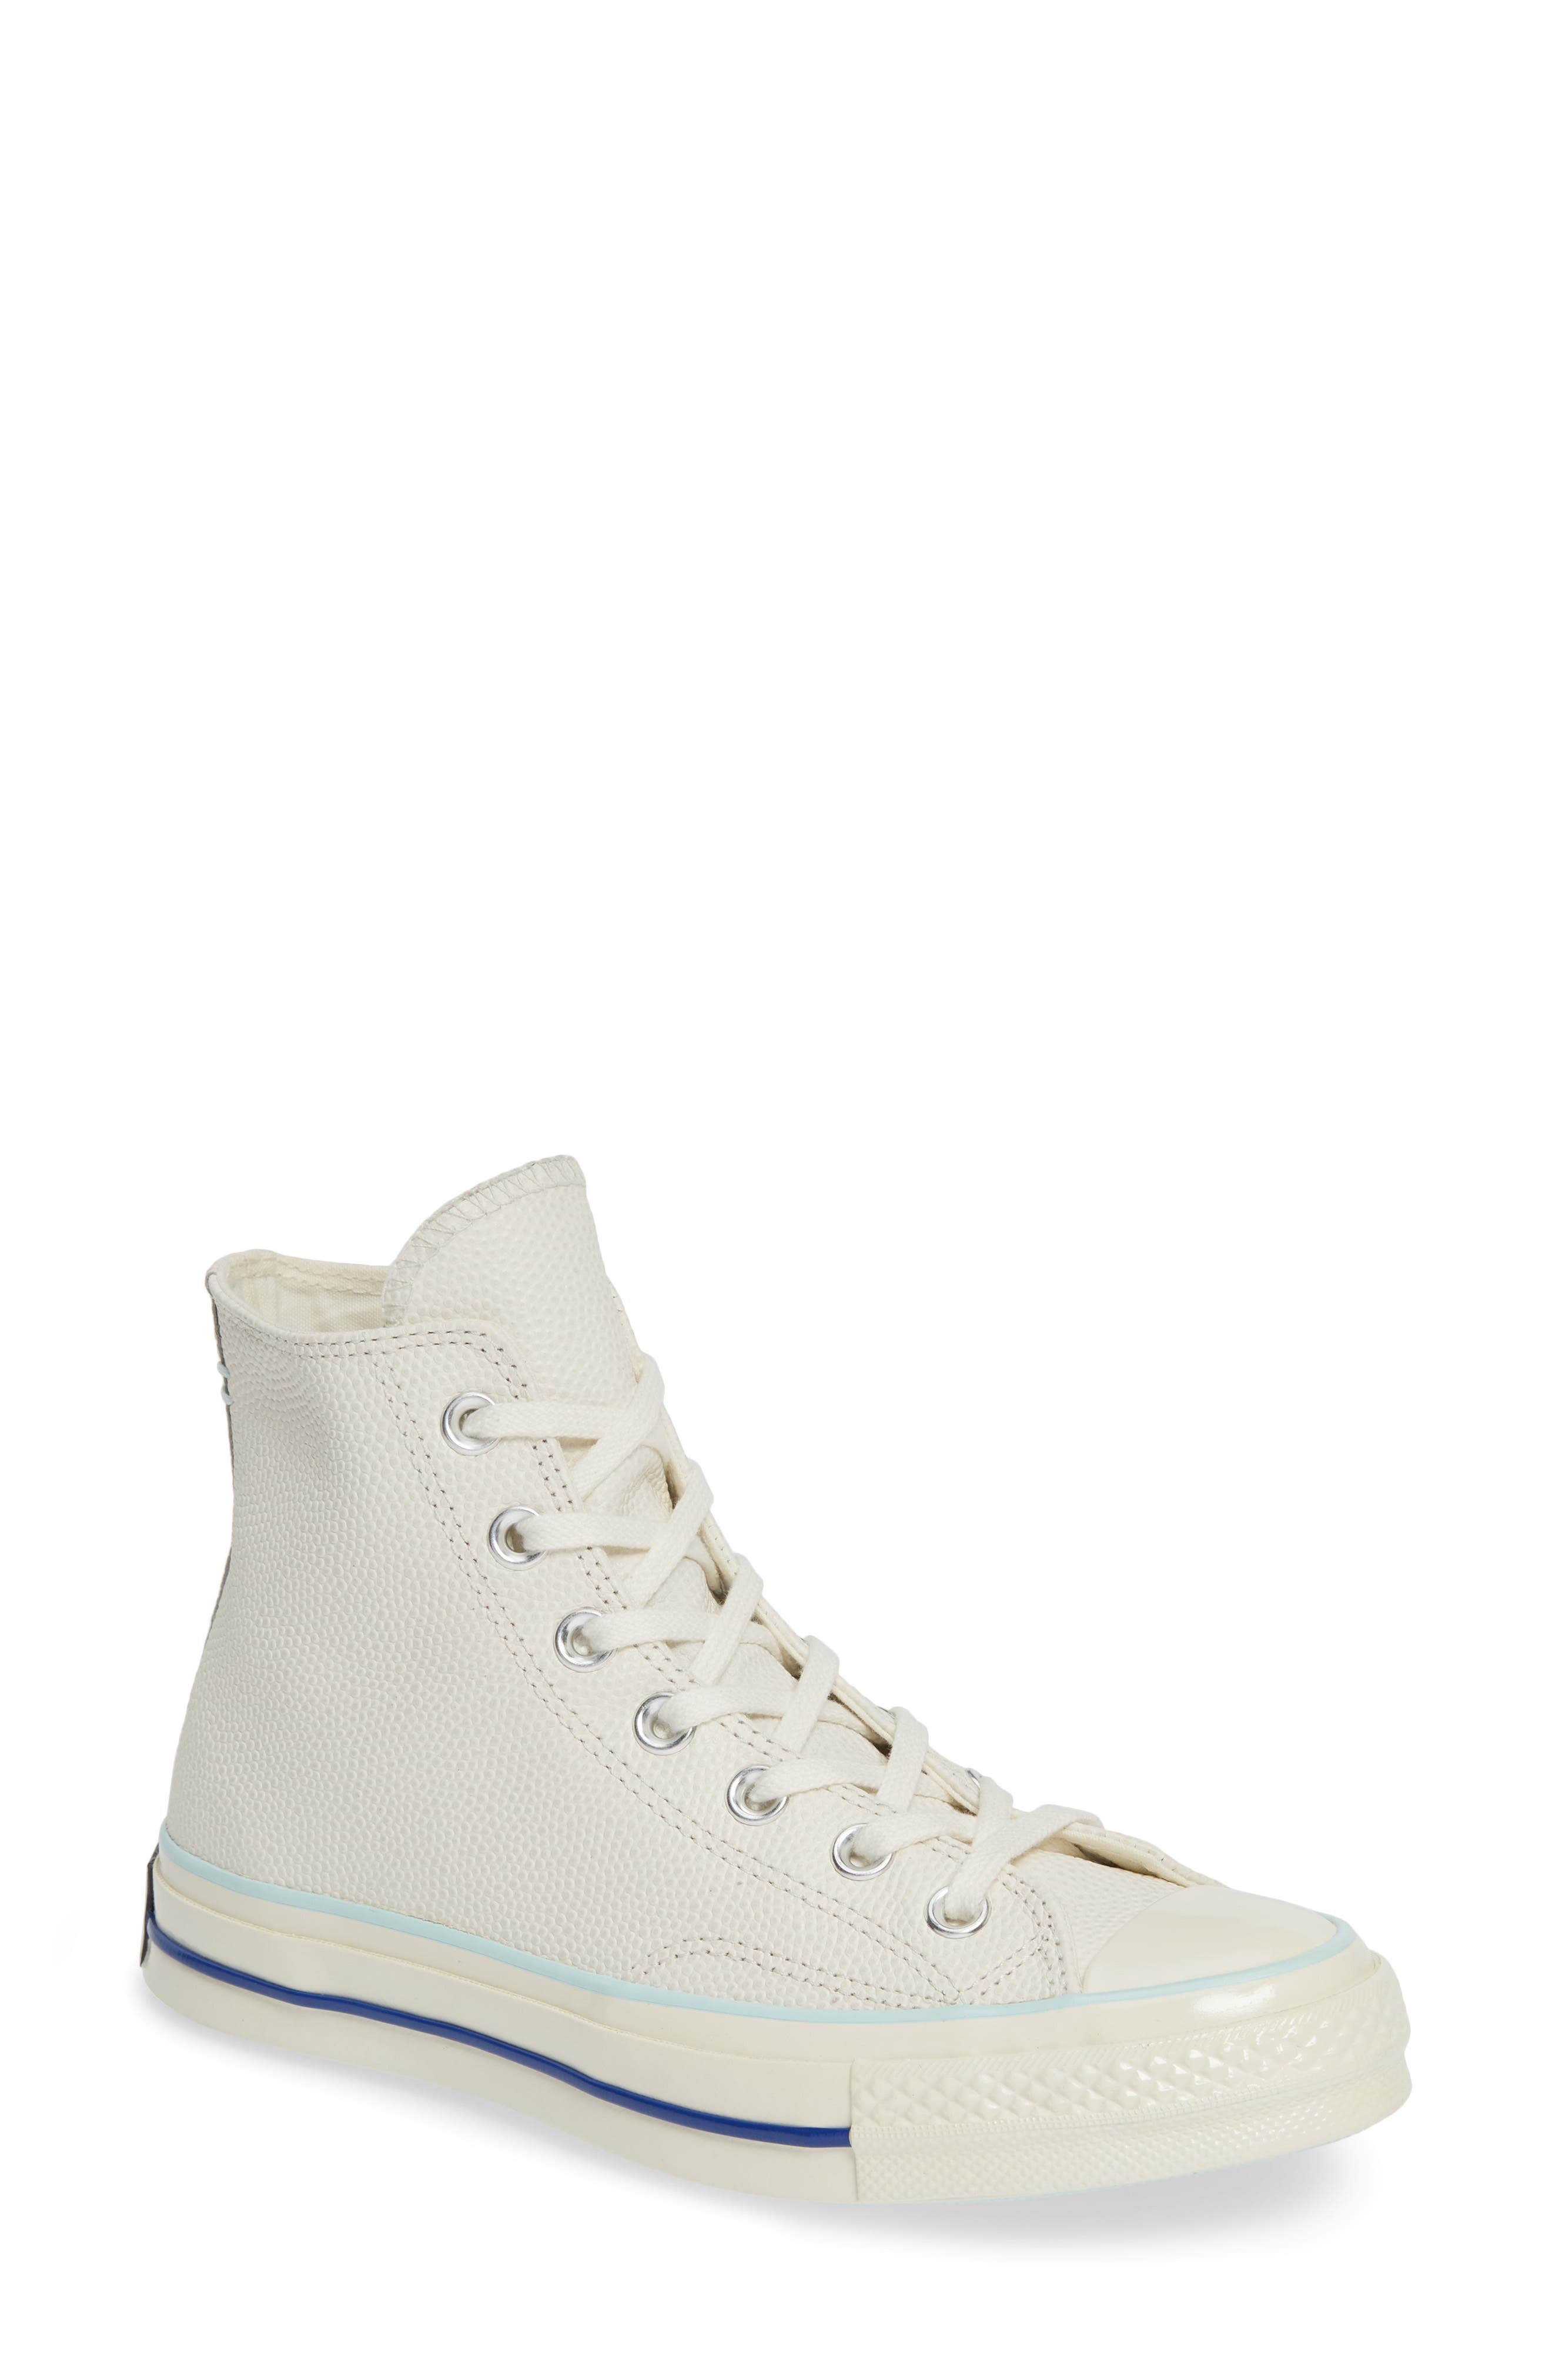 CONVERSE Chuck Taylor<sup>®</sup> All Star<sup>®</sup> 70 High Top Leather Sneaker, Main, color, EGRET/ TEAL TINT/ EGRET